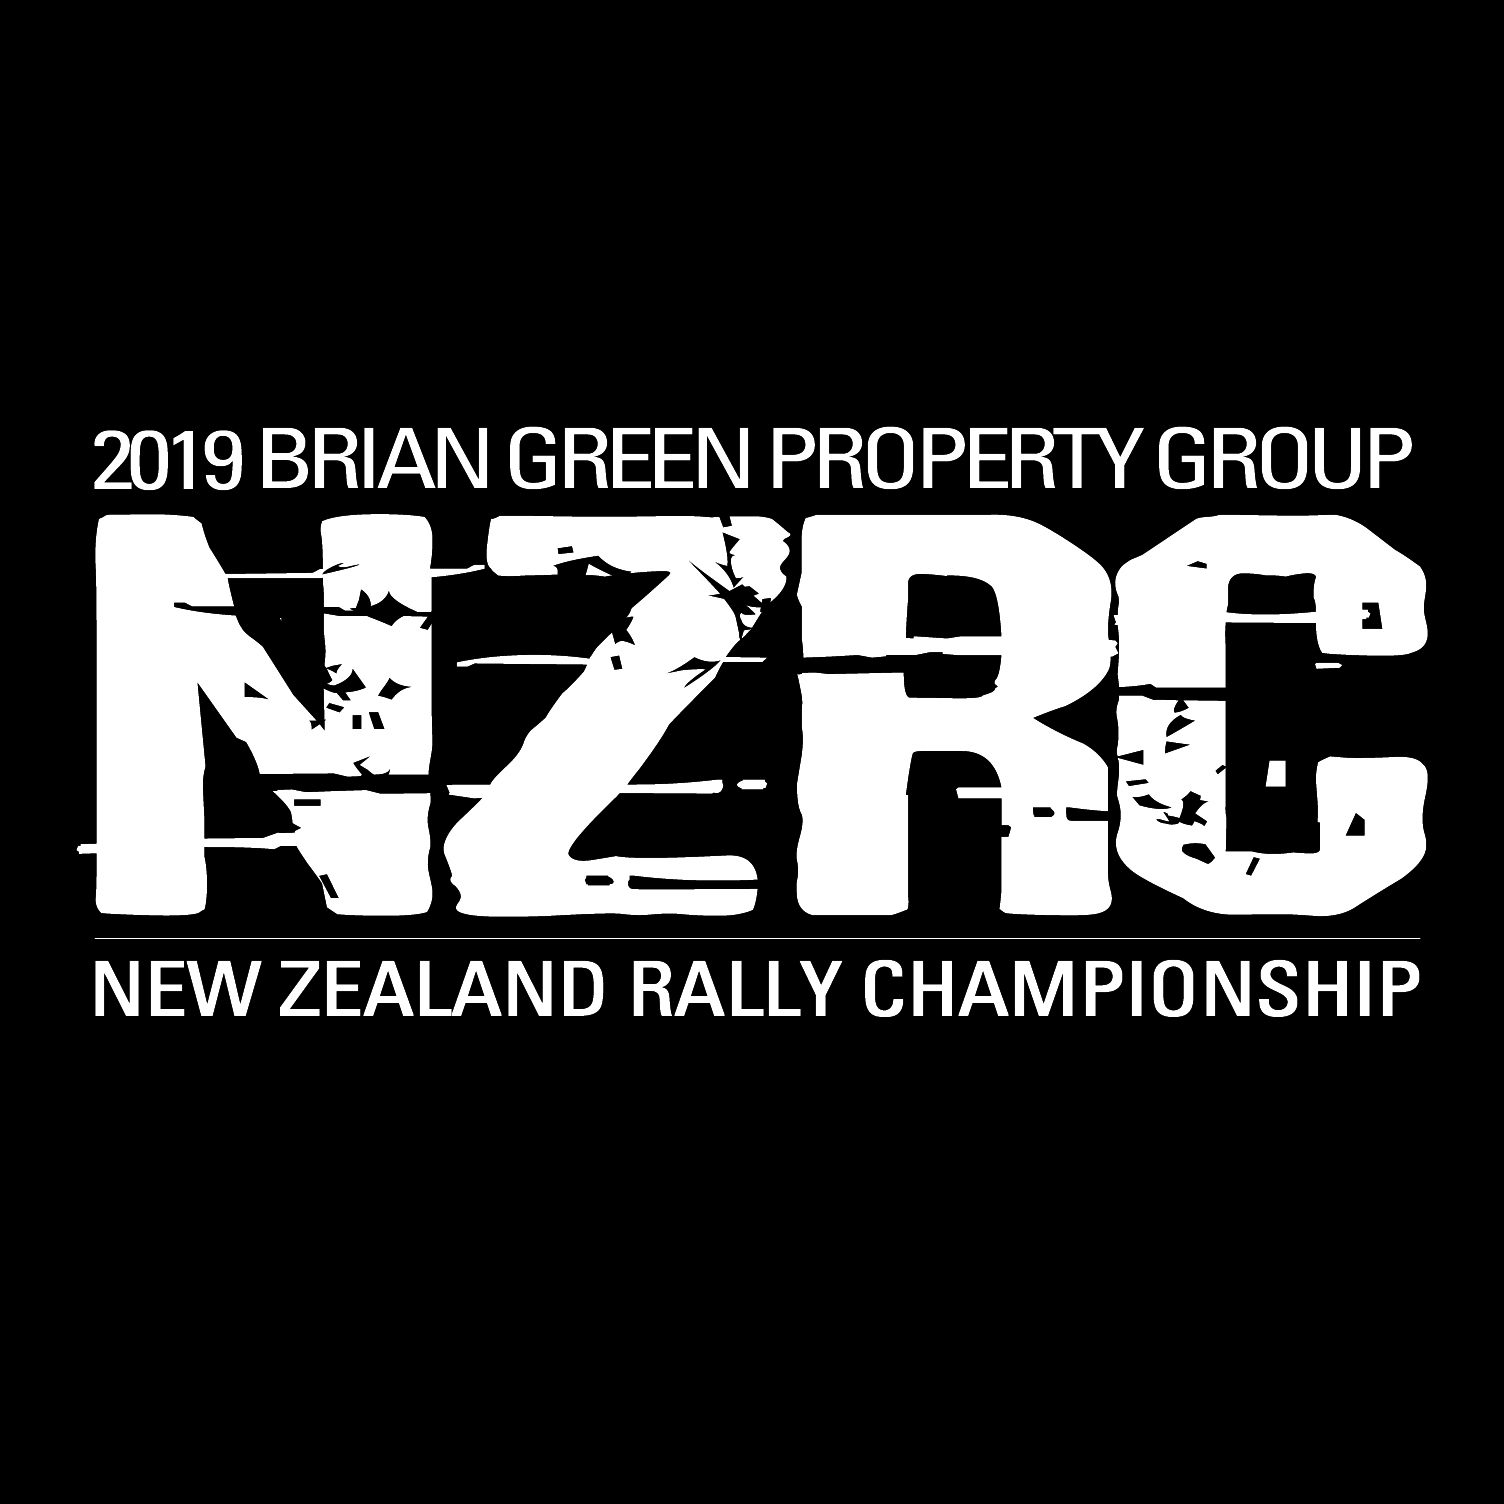 Stage Previews: International Rally of Whangarei | :: Brian Green Property Group New Zealand Rally Championship ::